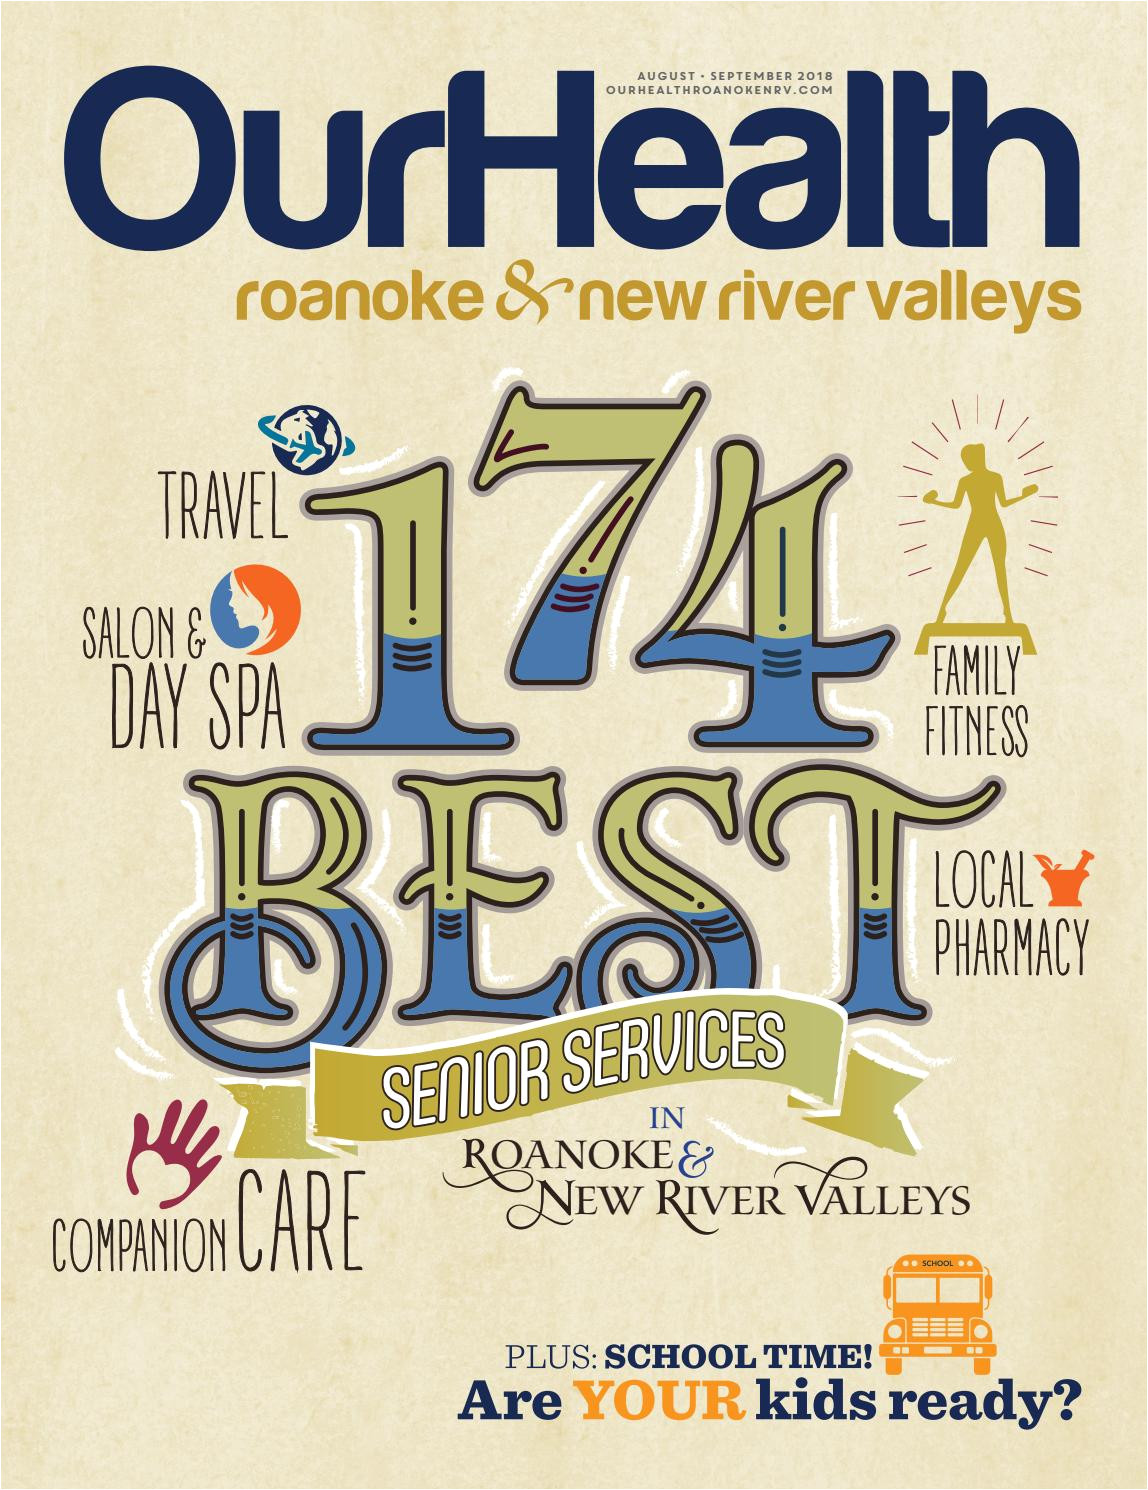 ourhealth roanoke new river valleys aug sept 2018 by ourhealth magazine issuu